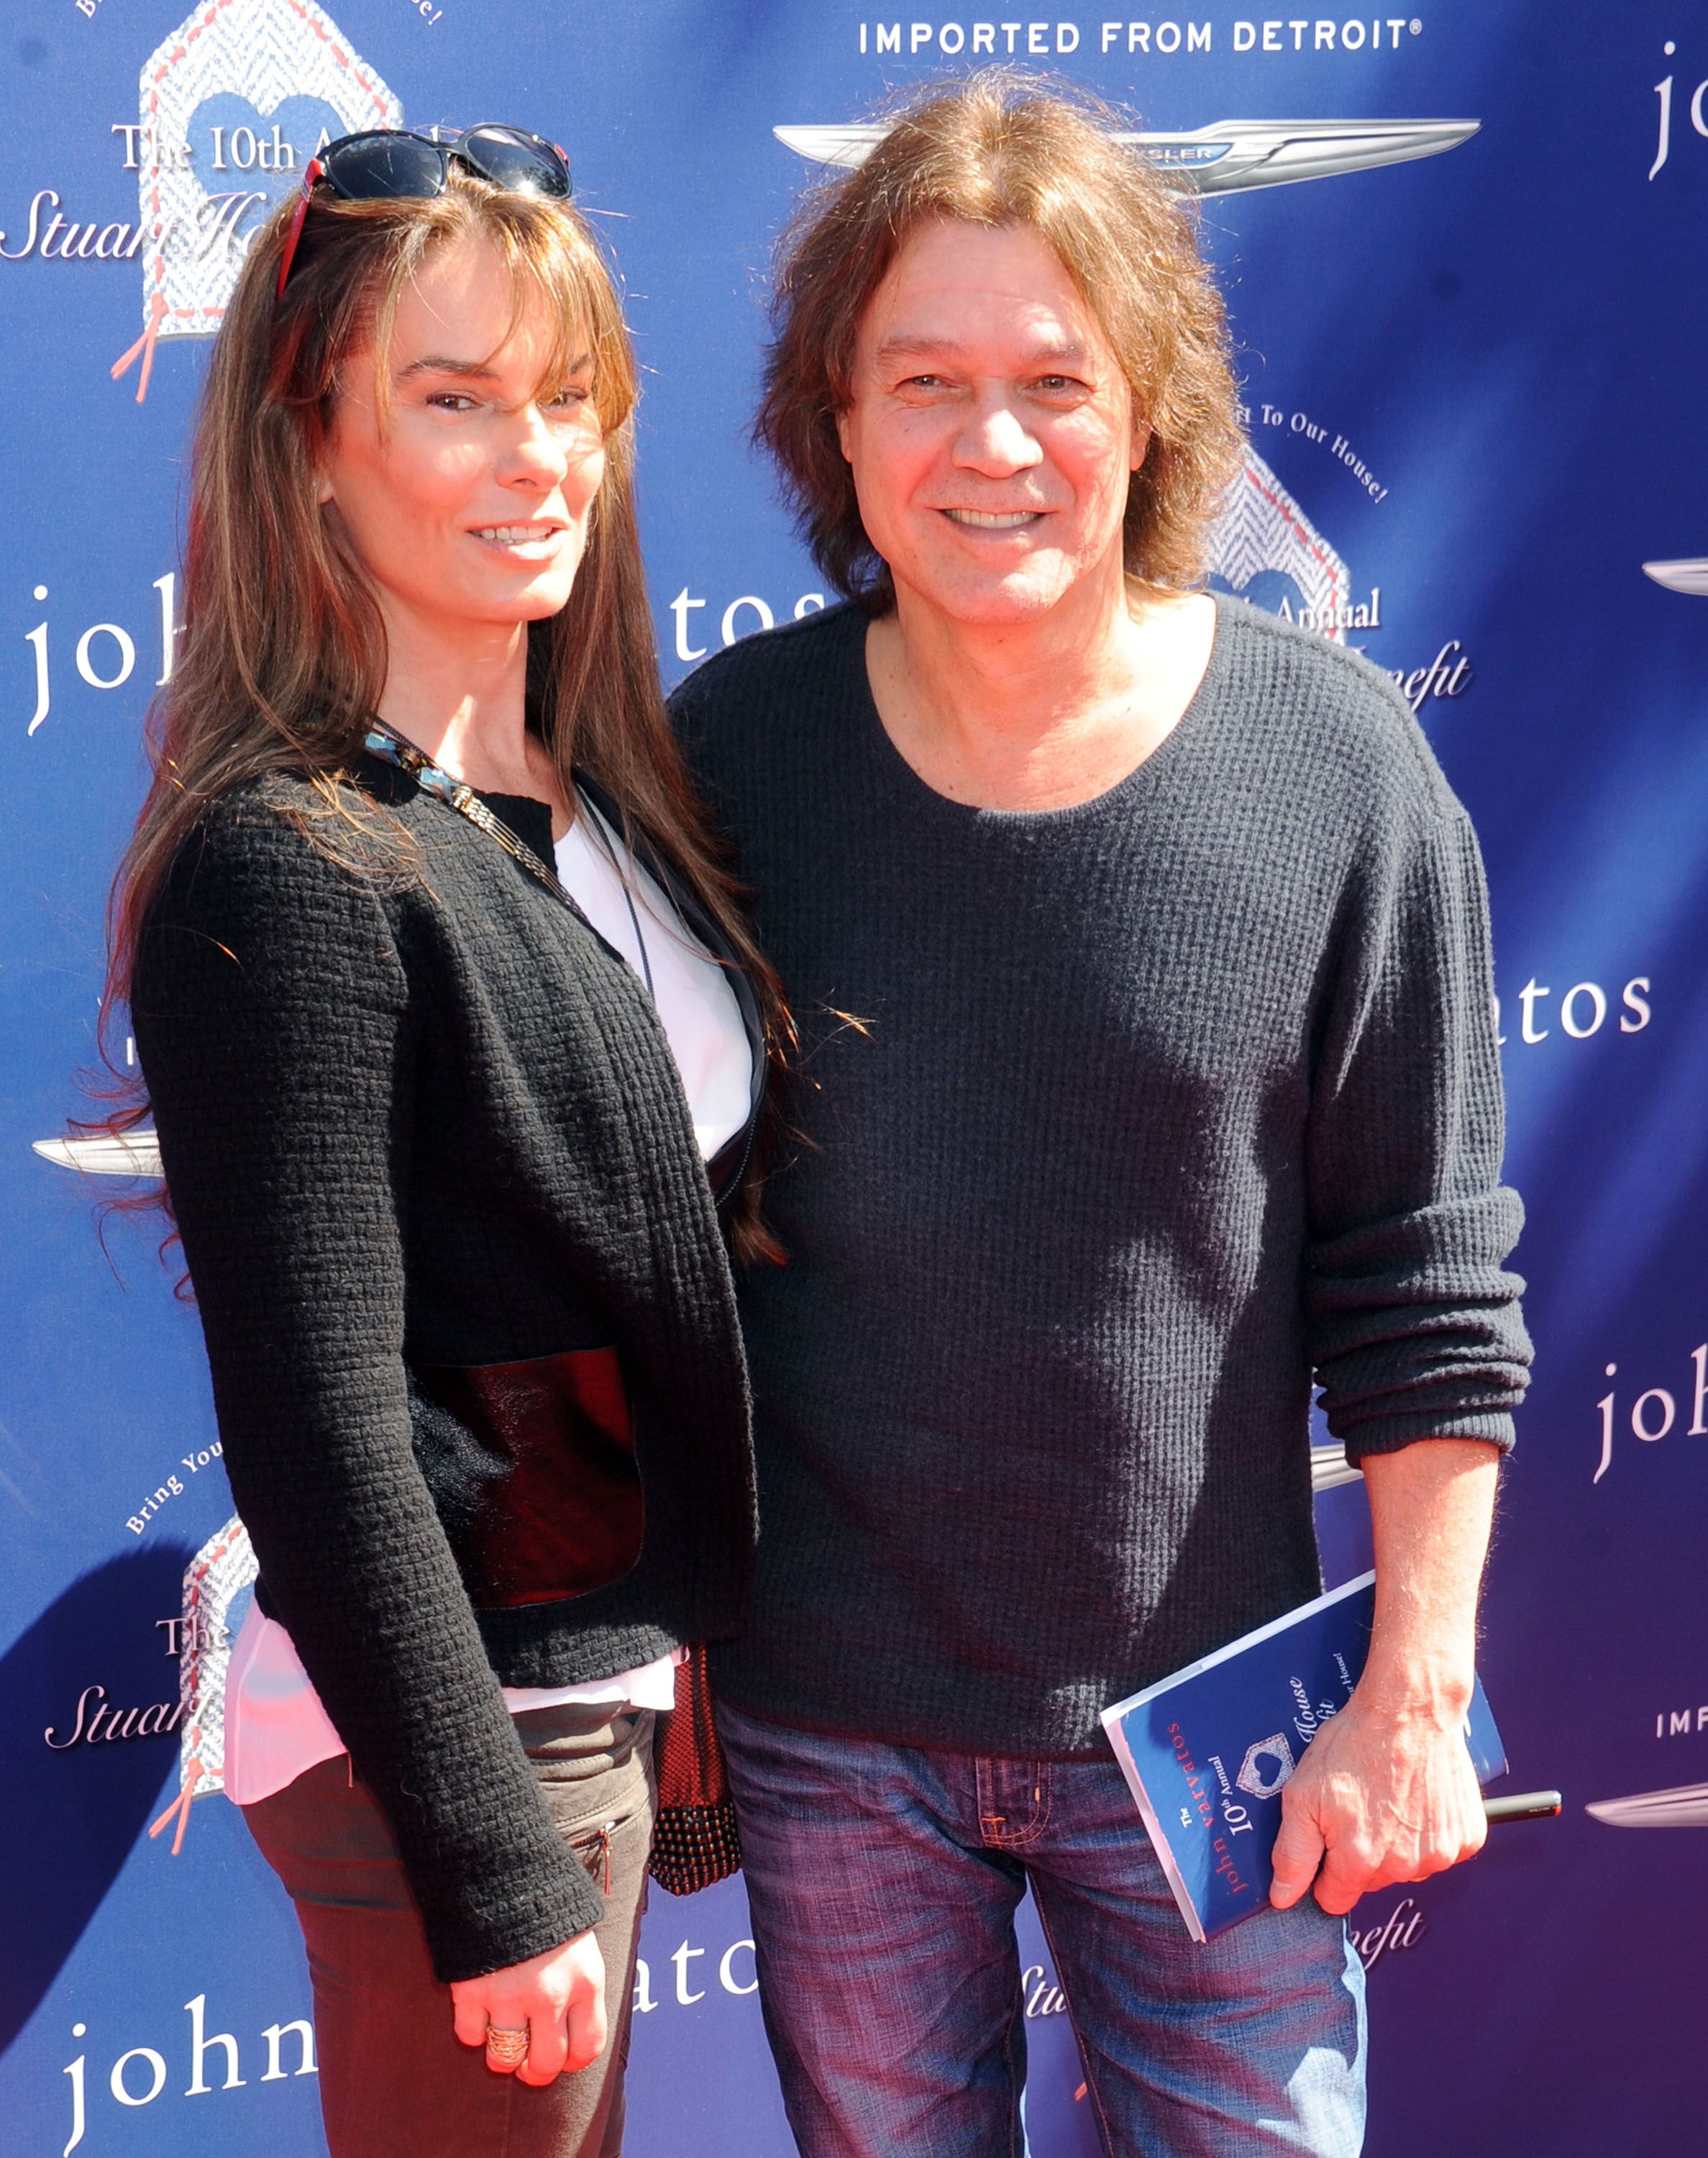 Eddie Van Halen and wife Janie Liszewski at John Varvatos 10th Annual Stuart House Benefit in 2013 in Los Angeles, California   Source: Getty Images